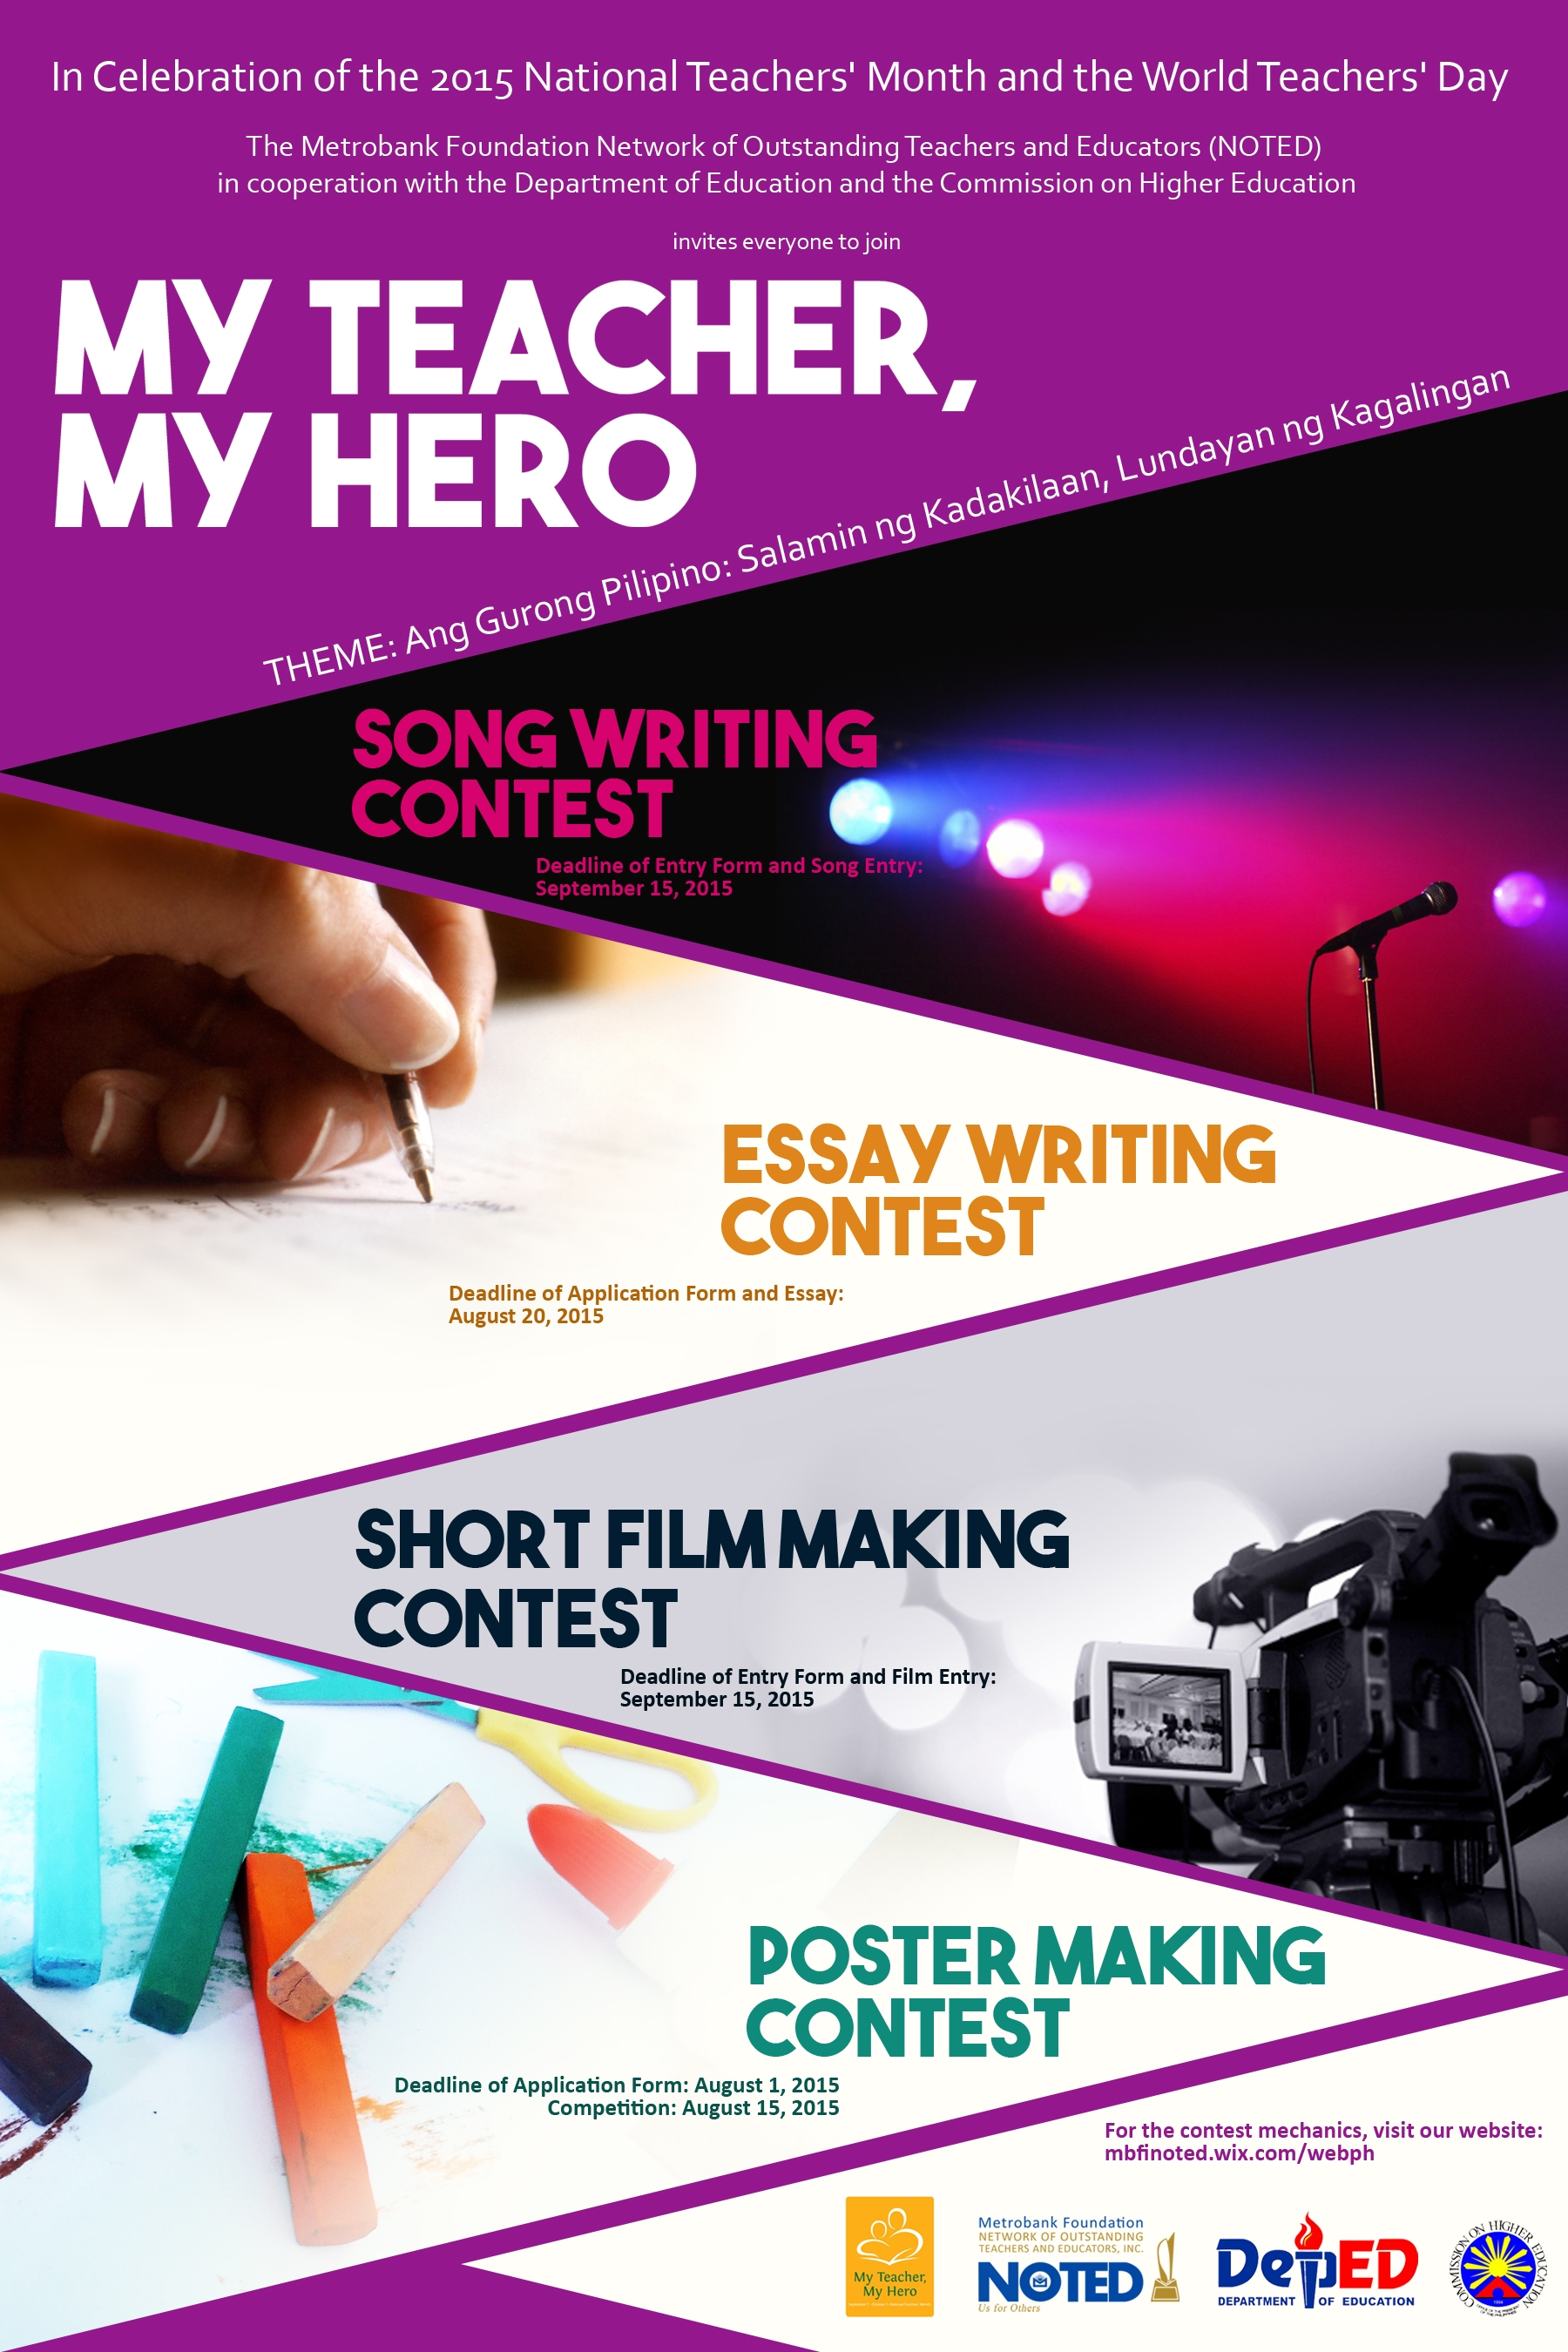 023 Essay Example Writing Contest 9bbb33 E6d36ee02b654f79801806f311facf4a Incredible Free Contests 2018 International Competitions For High School Students India Full